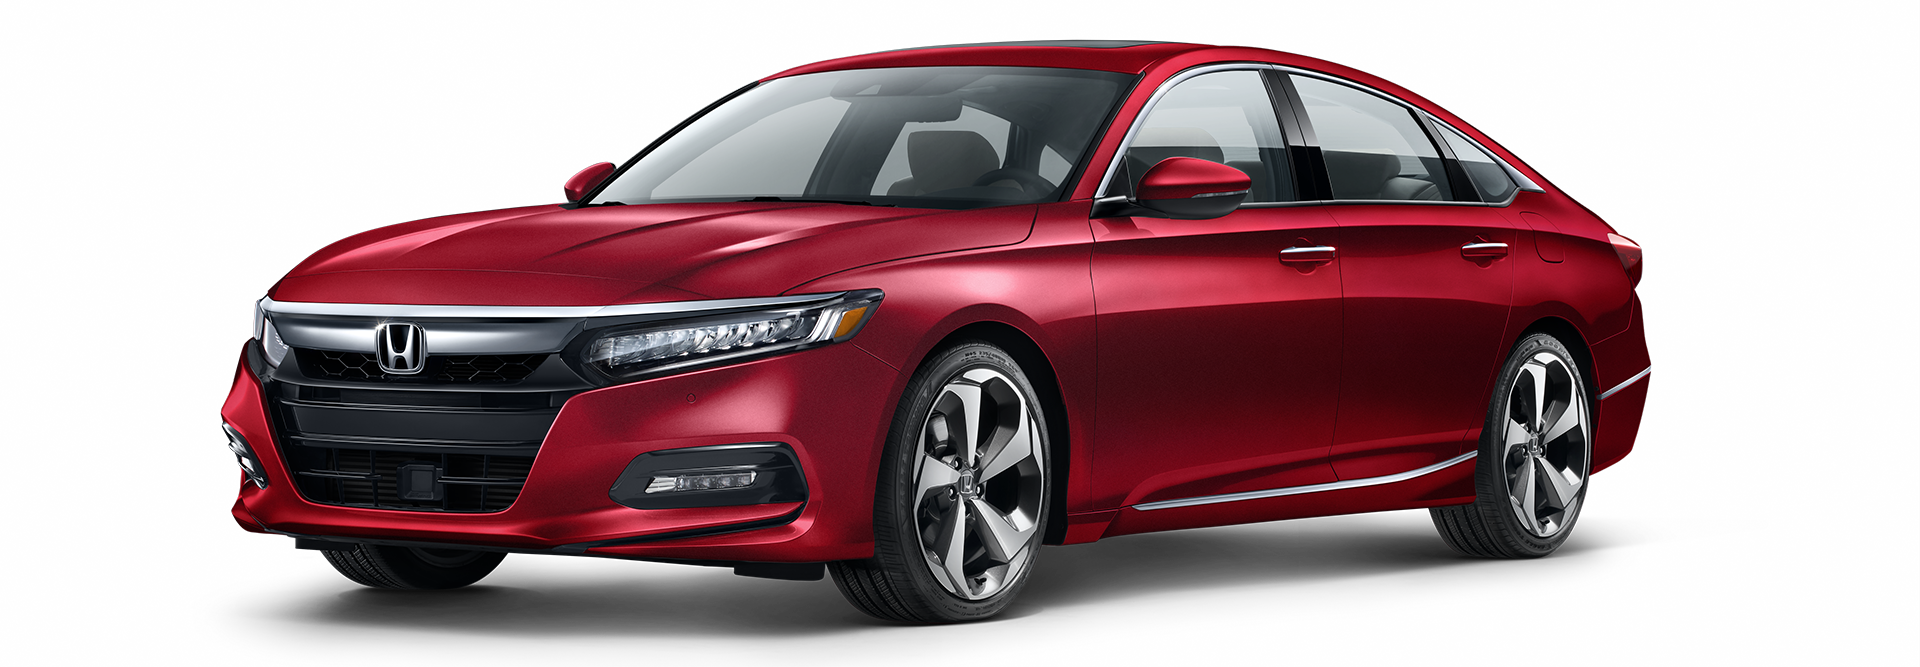 New Specials Deals Lease Offers Research 2020 Honda Accord Model Details Rairdon S Honda Of Burien